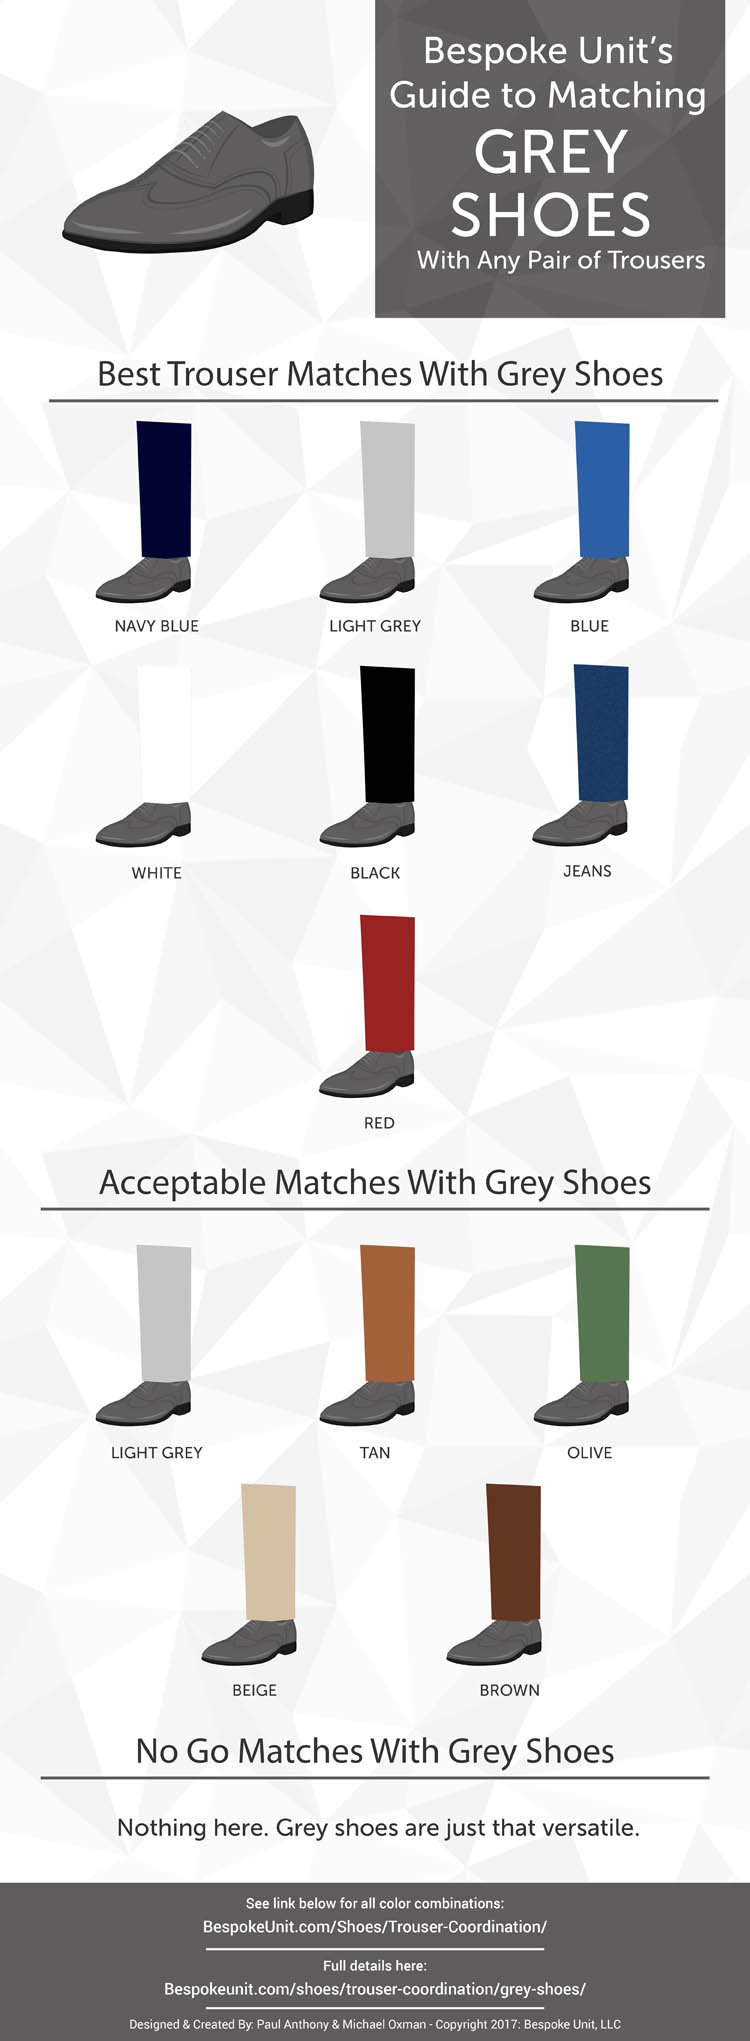 Grey-Shoe-Coordination-Graphic